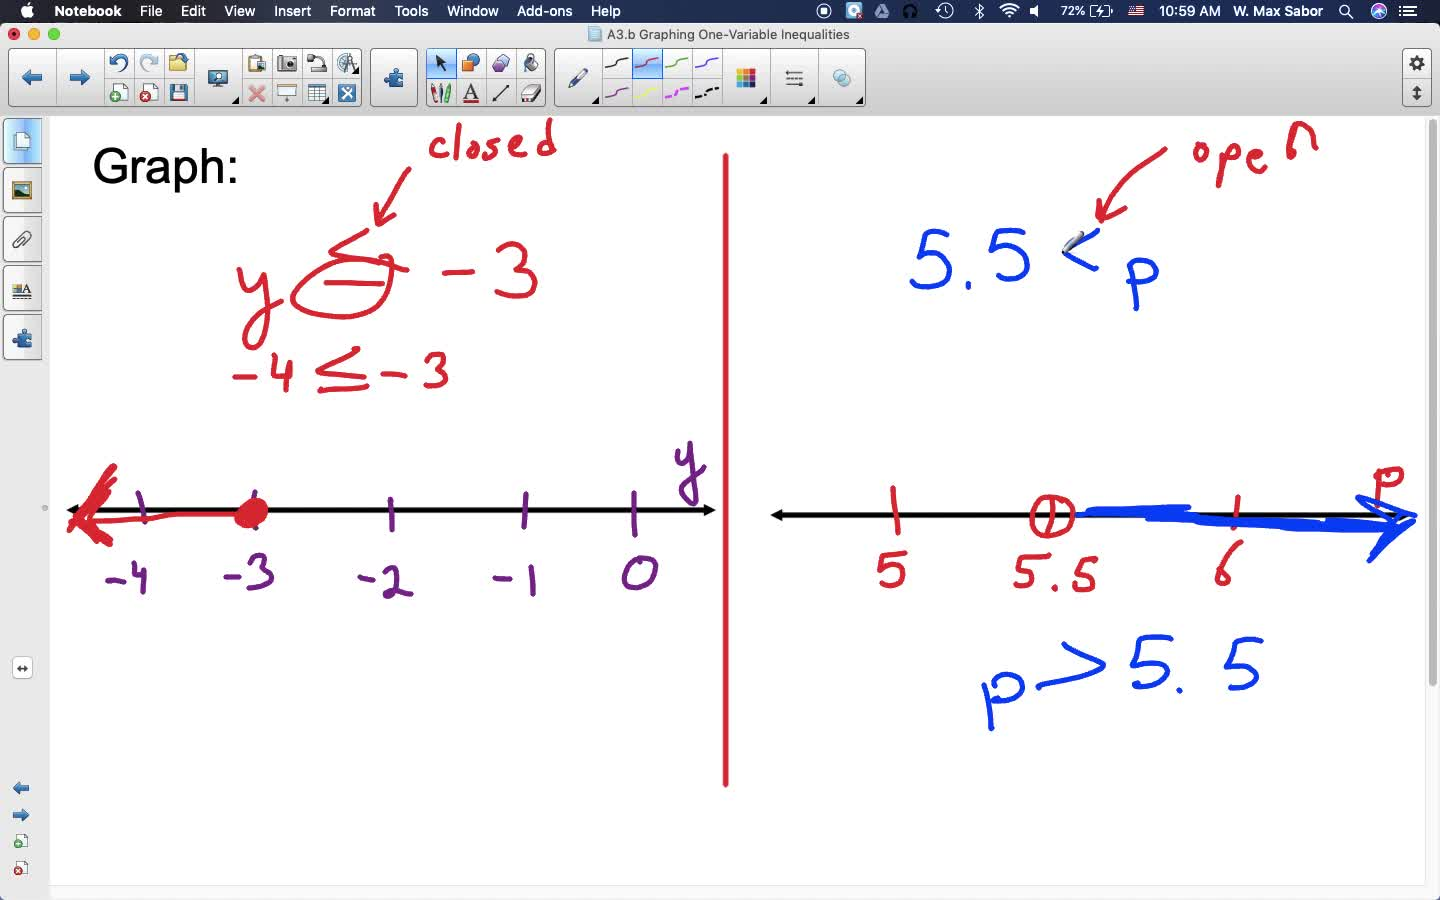 A3.b Graphing One-Variable Inequalities